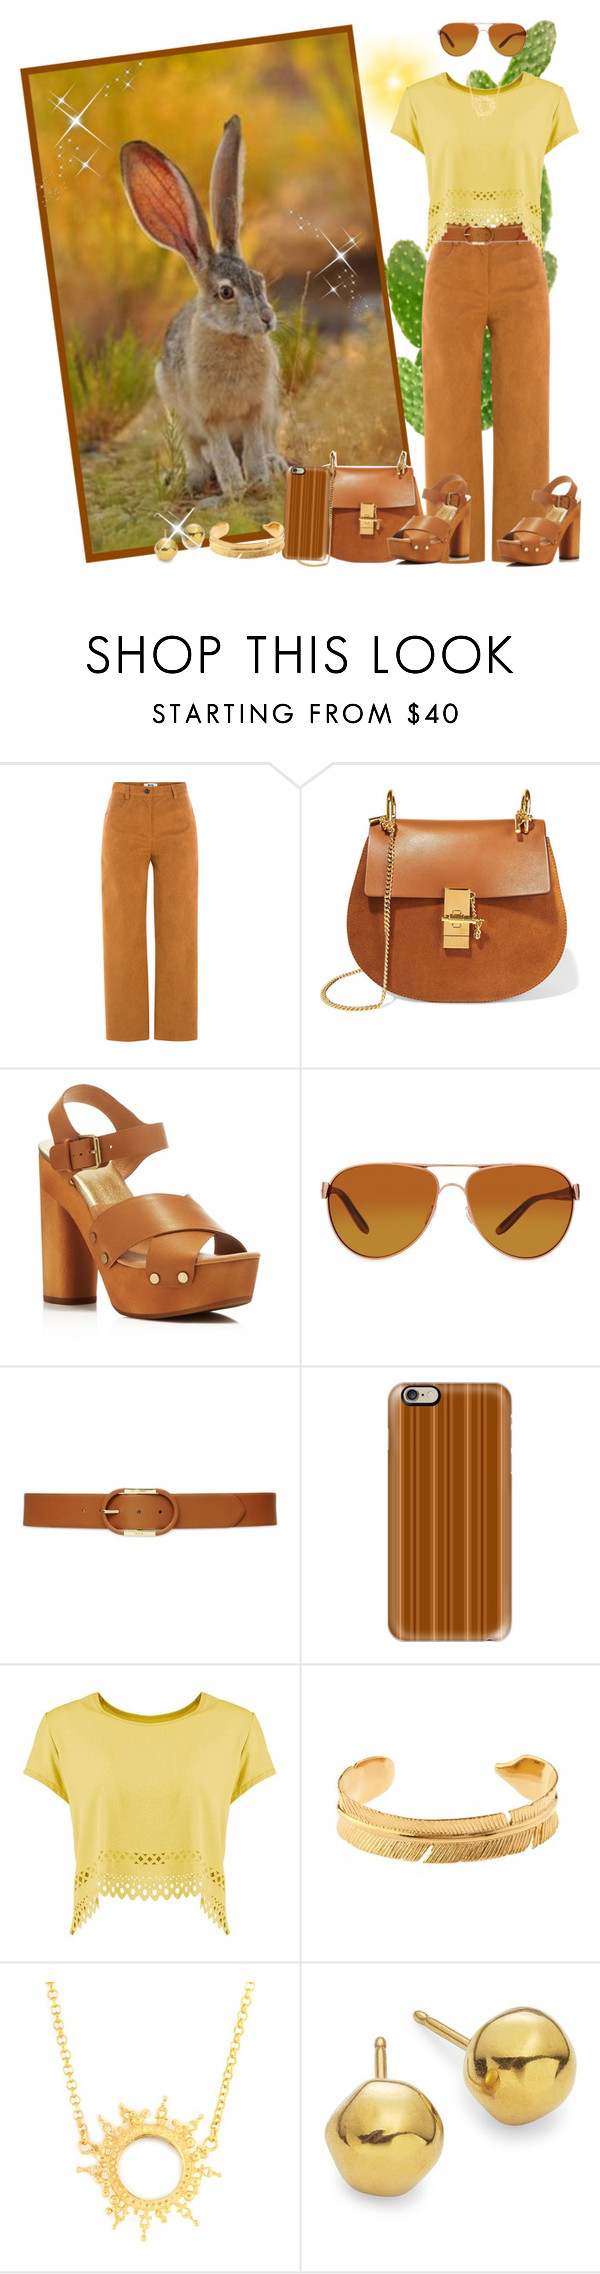 """This Hare can Hear a Pin Drop!"" by krusie ❤ liked on Polyvore featuring MSGM, Chloé, Dolce Vita, Oakley, Lauren Ralph Lauren, Casetify, Marte Frisnes, Annabelle Lucilla Jewellery and Uno de 50"